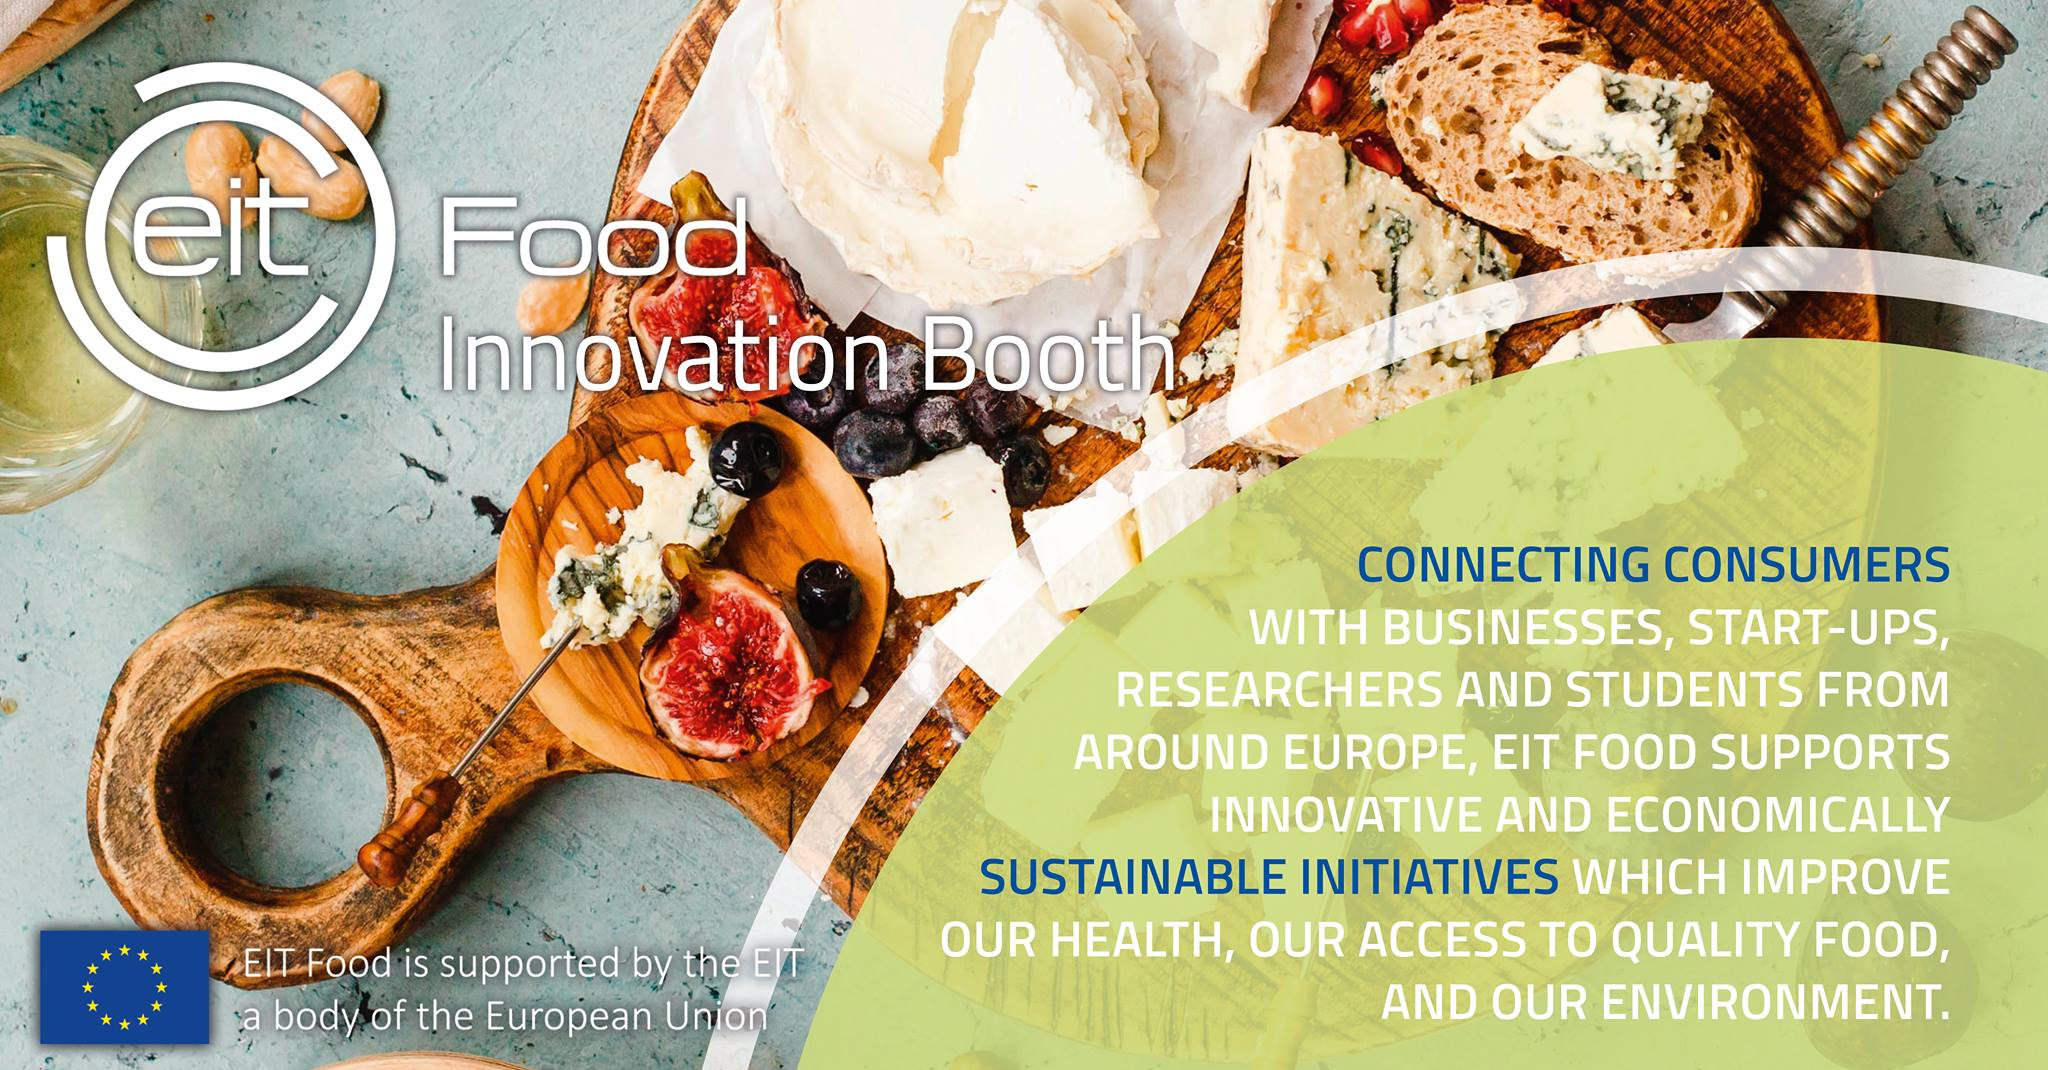 Expanding disruption with our 16 meter Food Innovation Booth